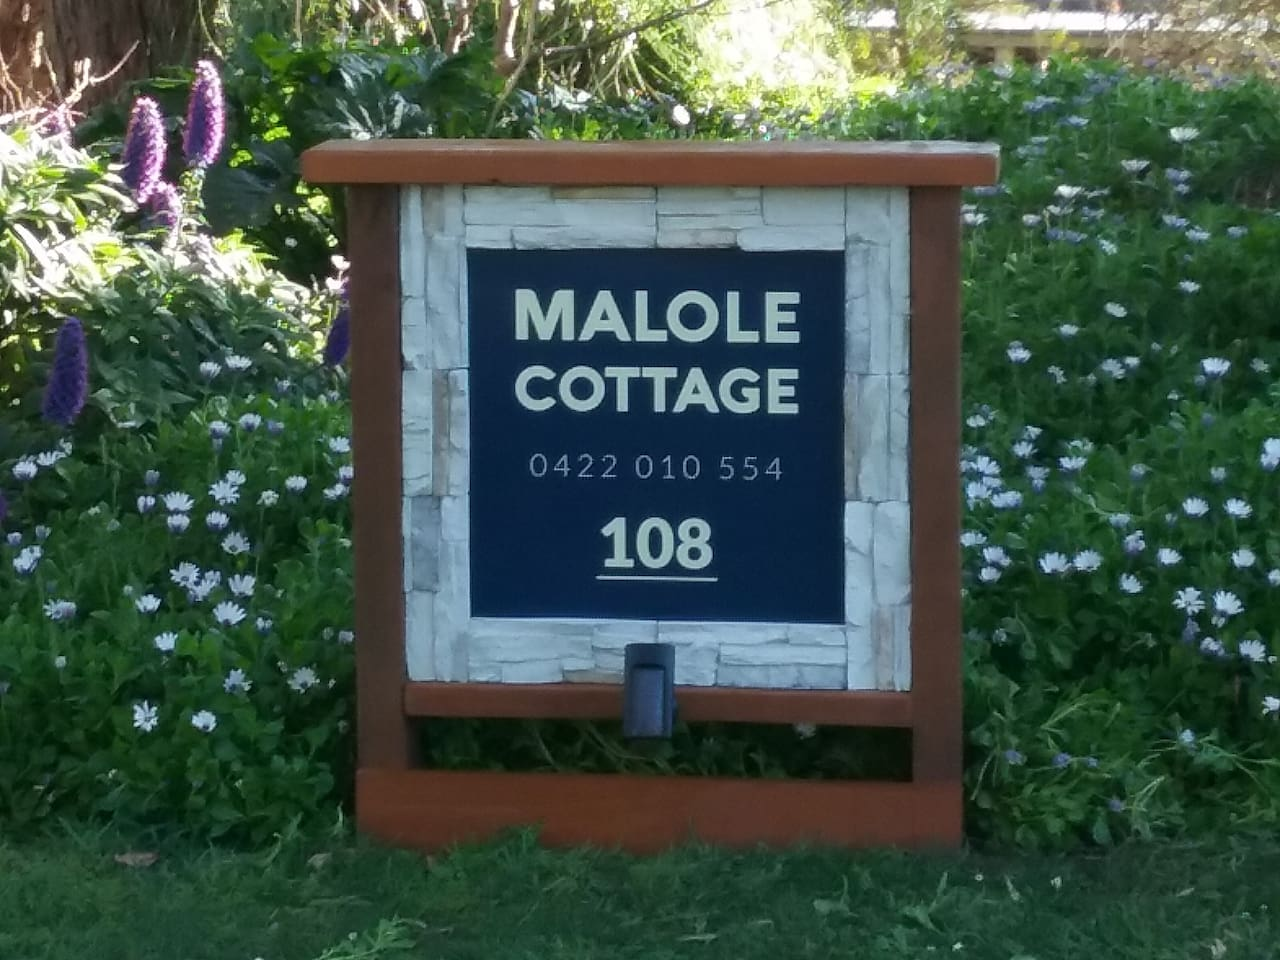 Easy way to found. Sign Malole cottage